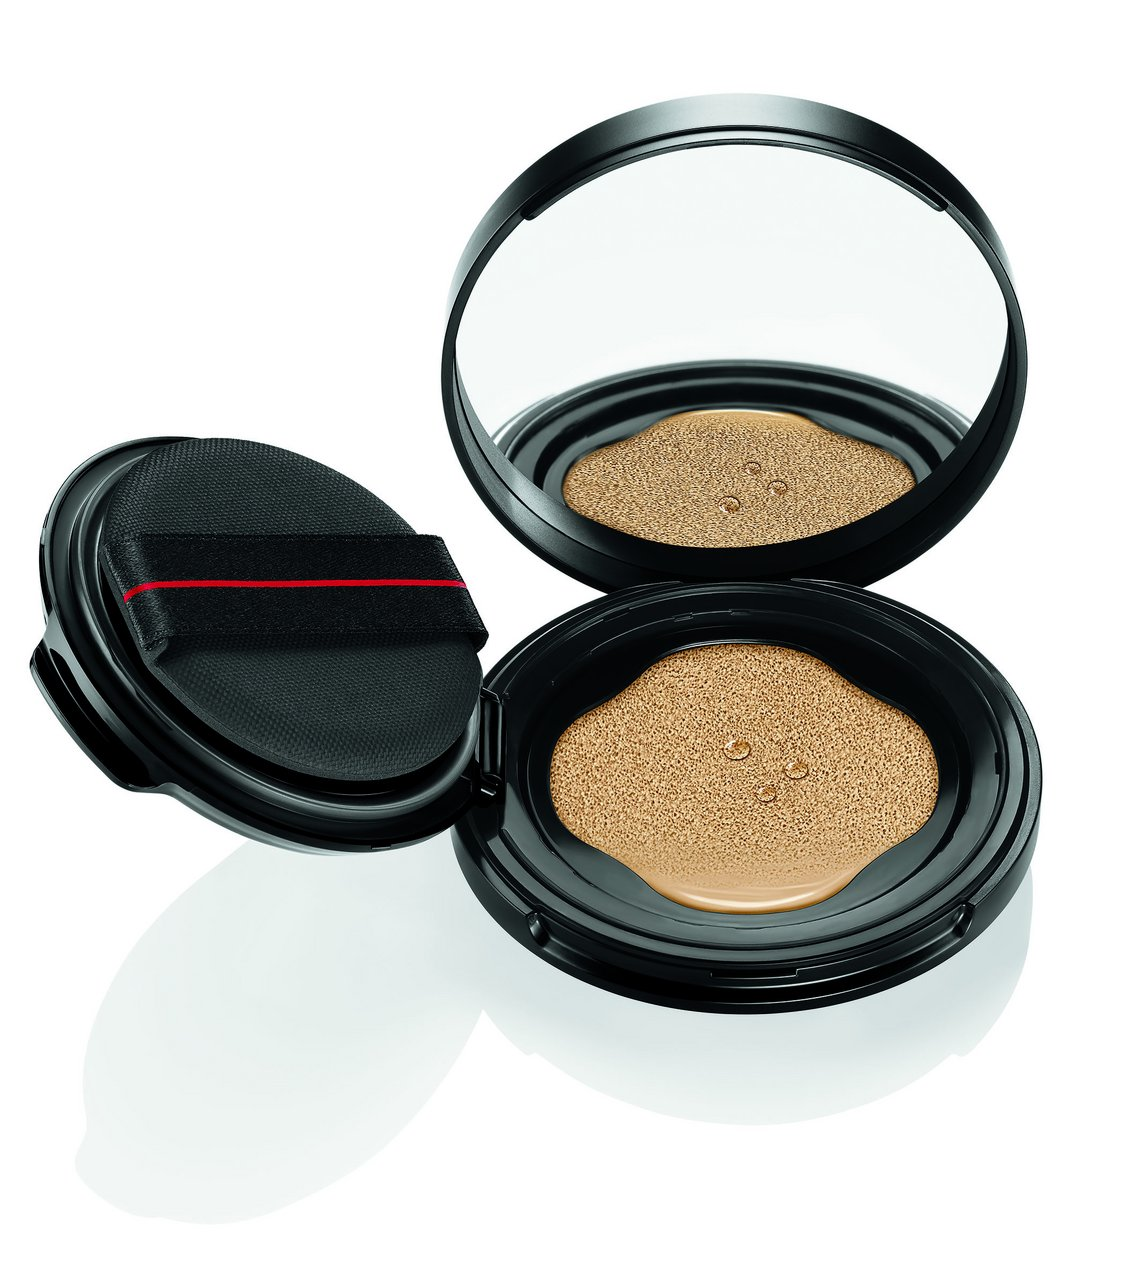 SHISEIDO Make-up Cushion Compact